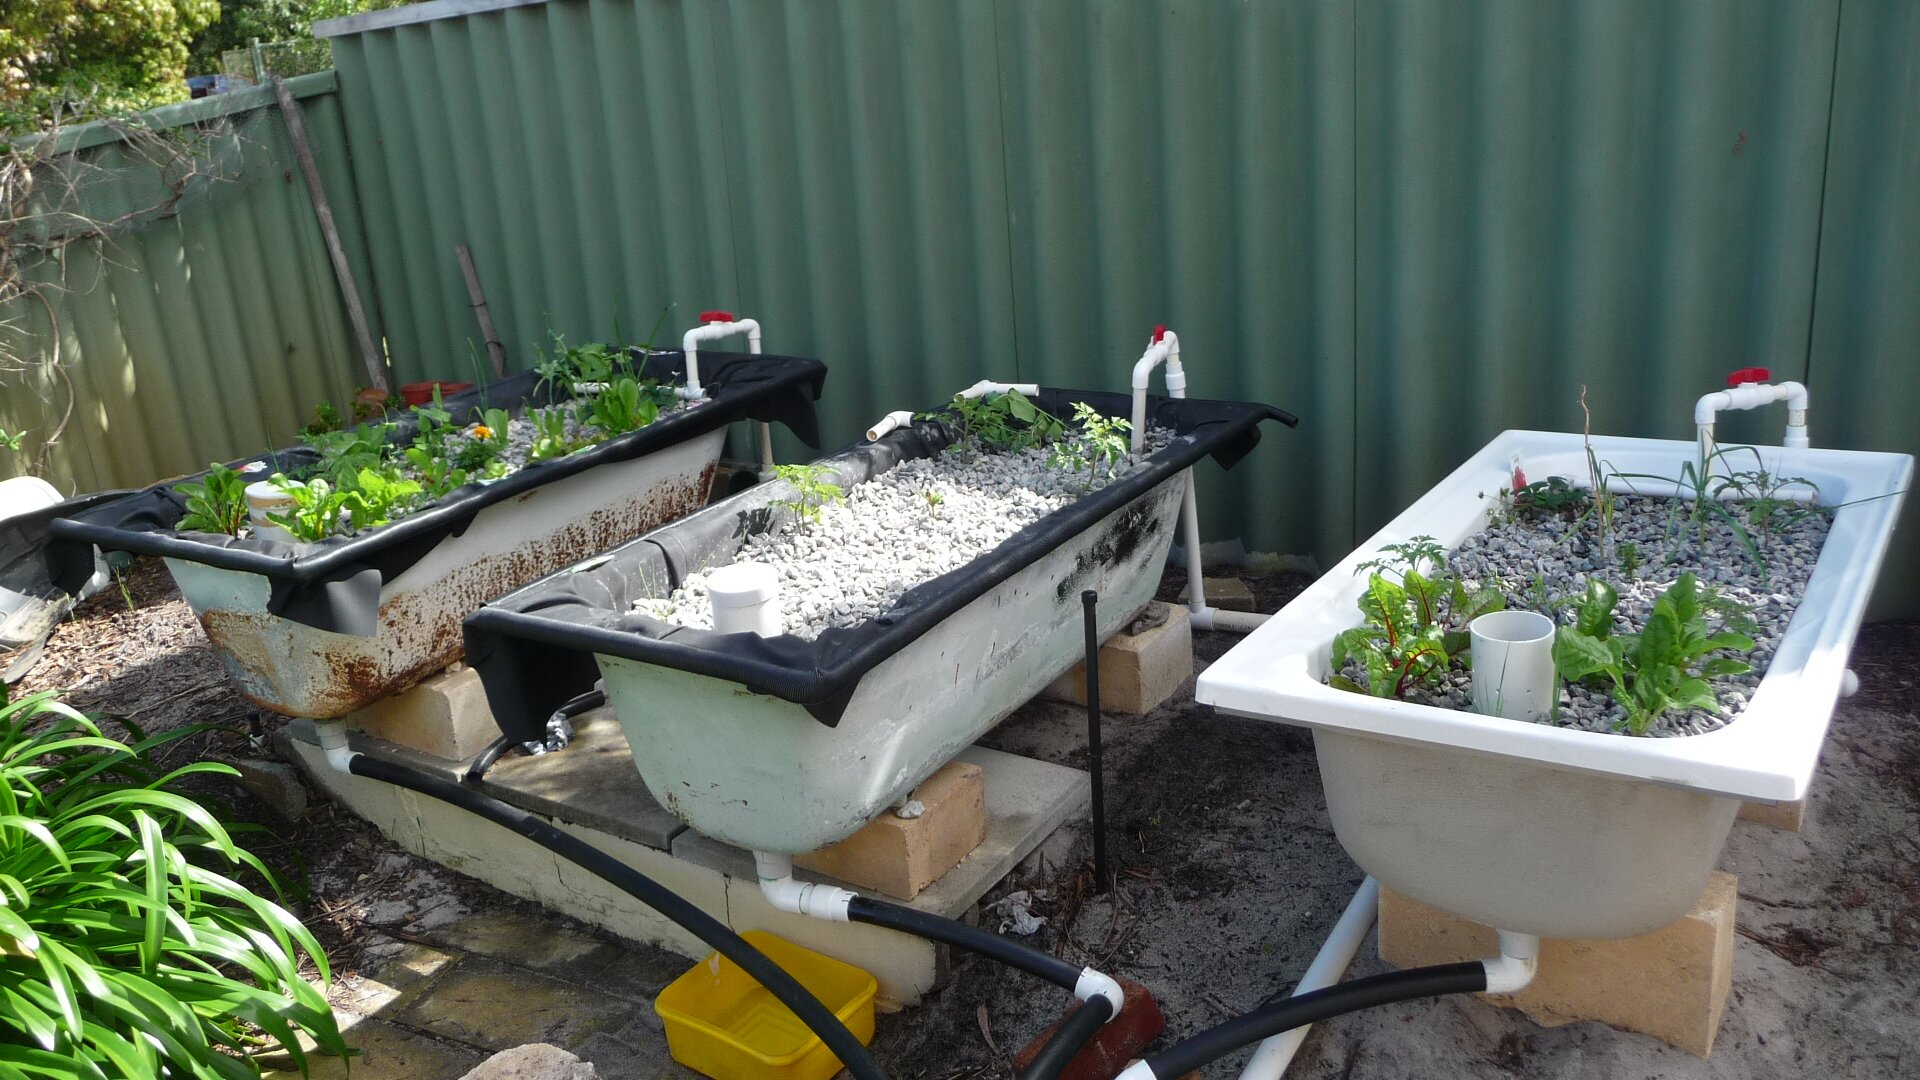 Grow Beds Aquaponics Tubs